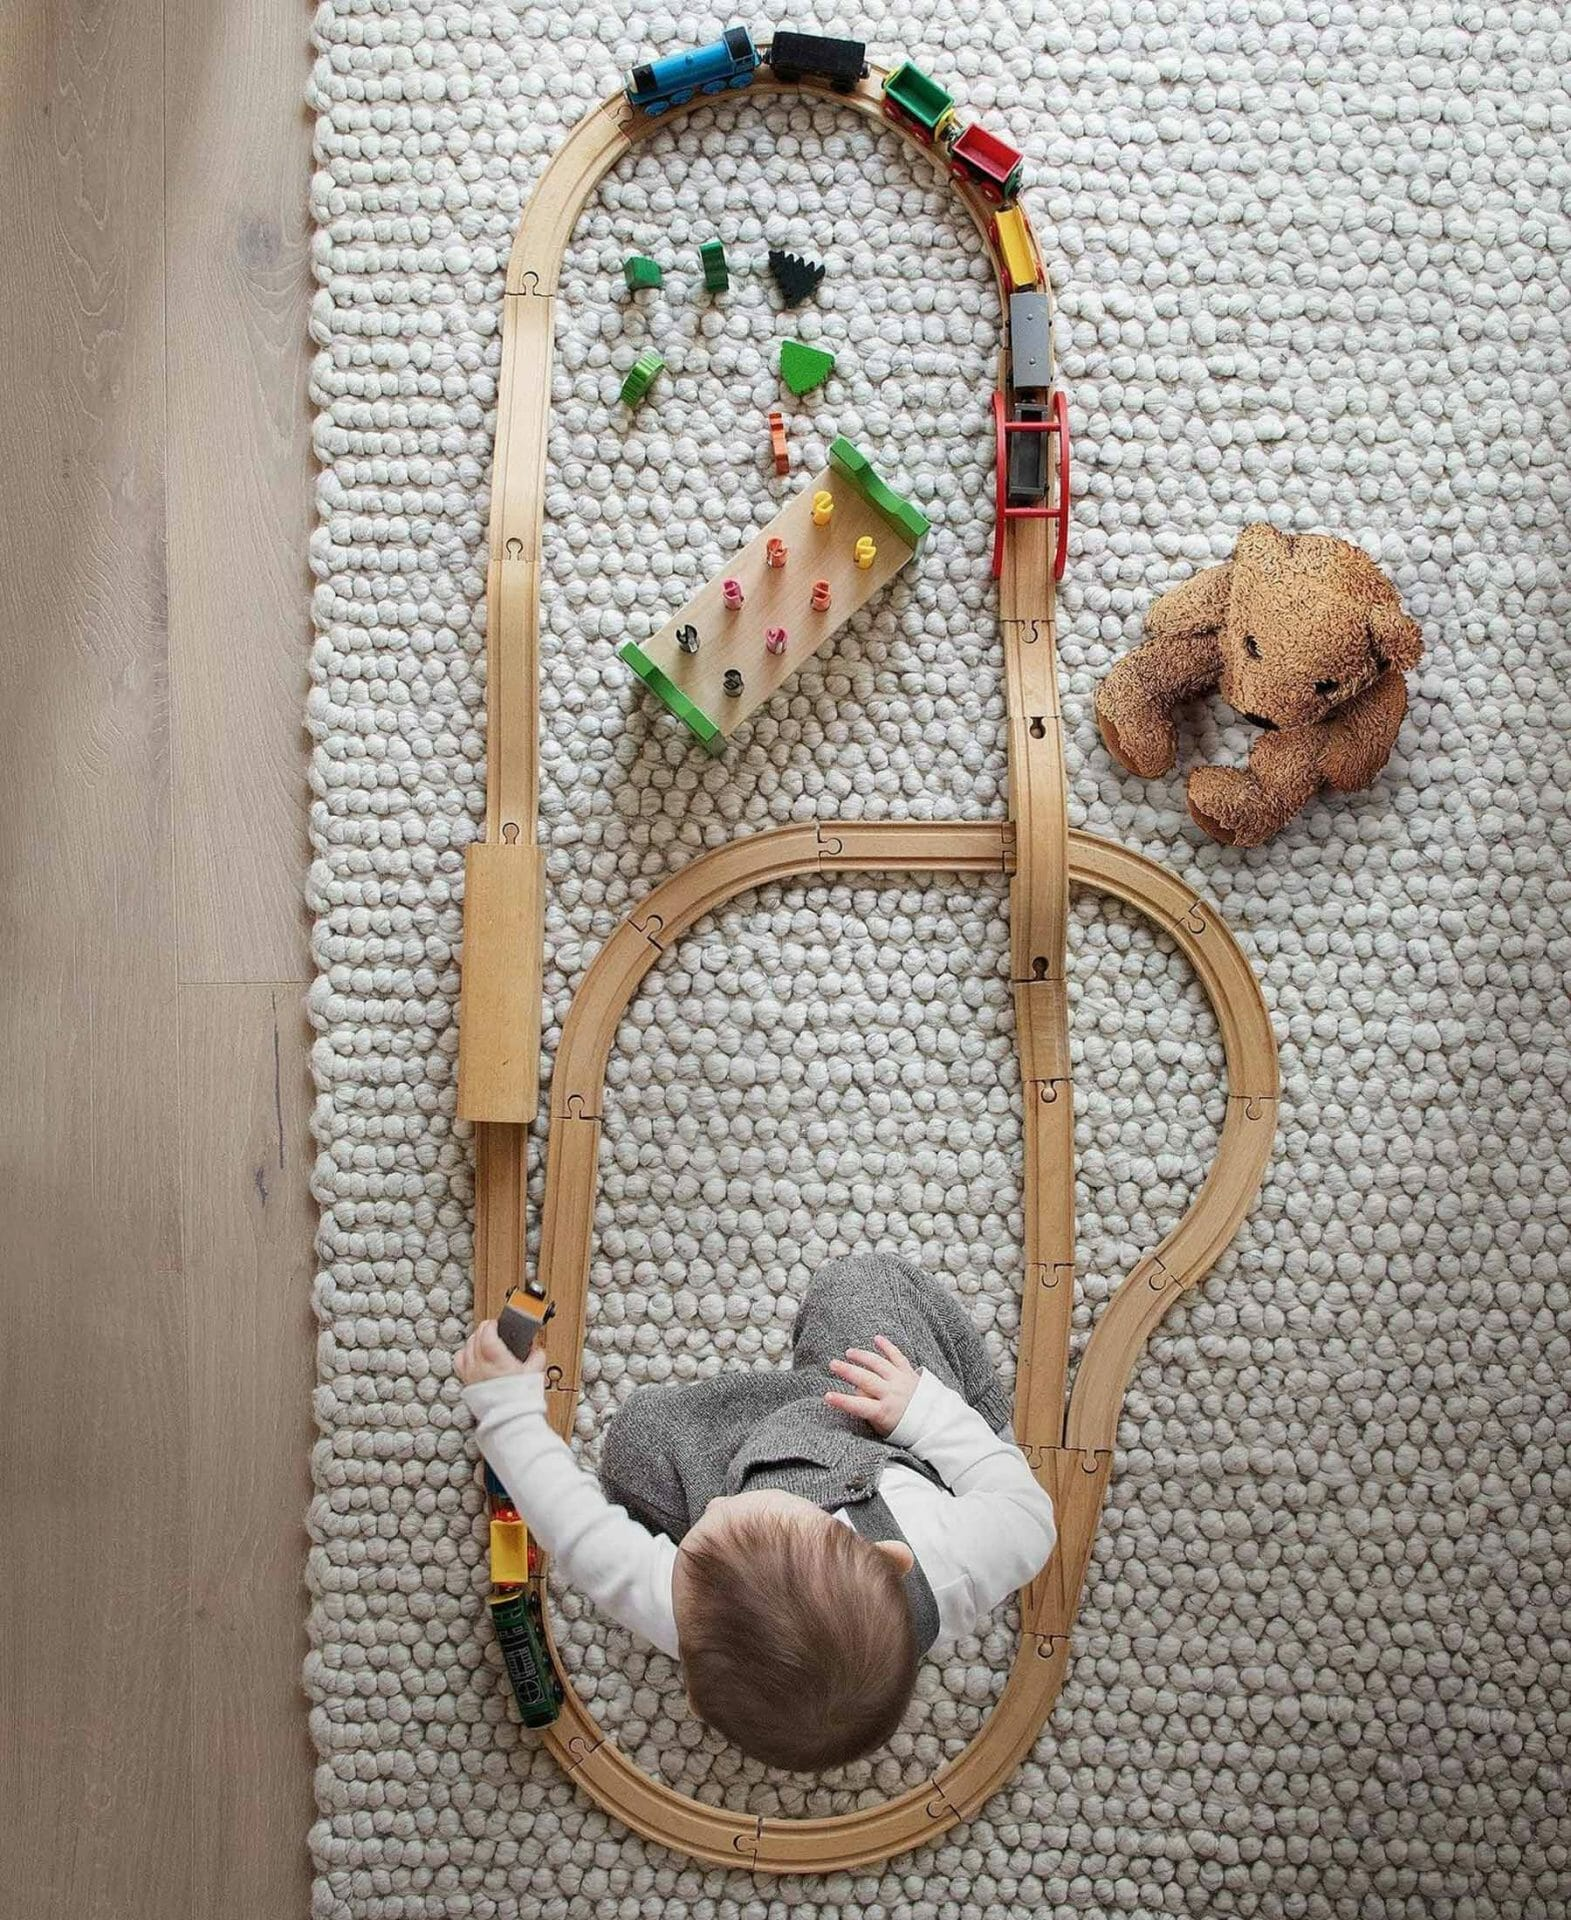 Phil Cohen's son plays with a wooden train track on the wool Hira Rug by Article.